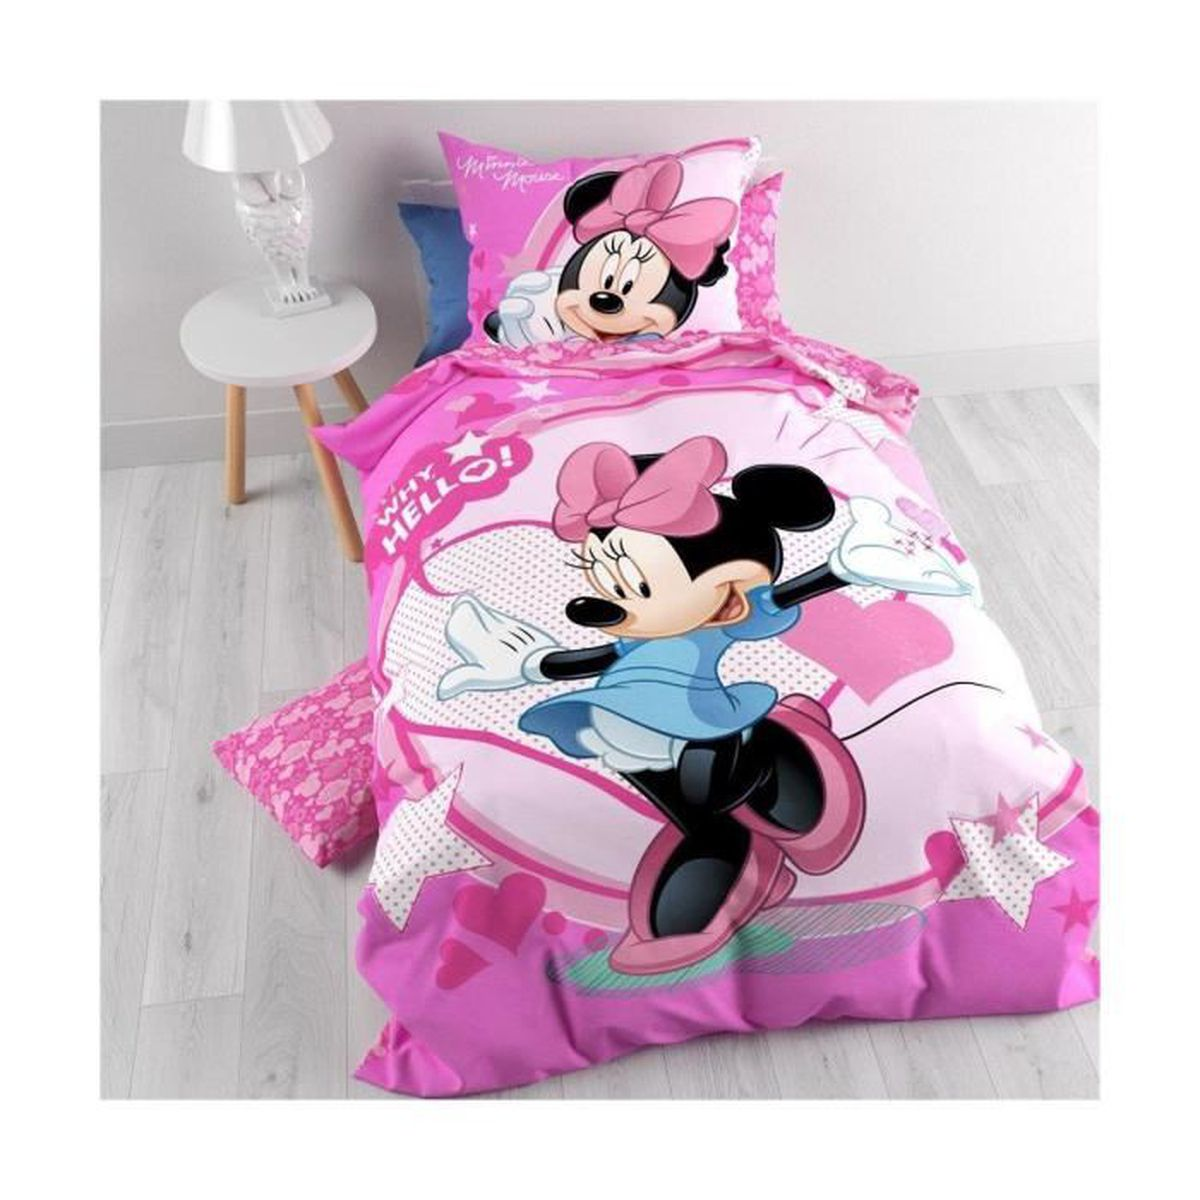 parure de lit 1 personne minnie achat vente parure de. Black Bedroom Furniture Sets. Home Design Ideas